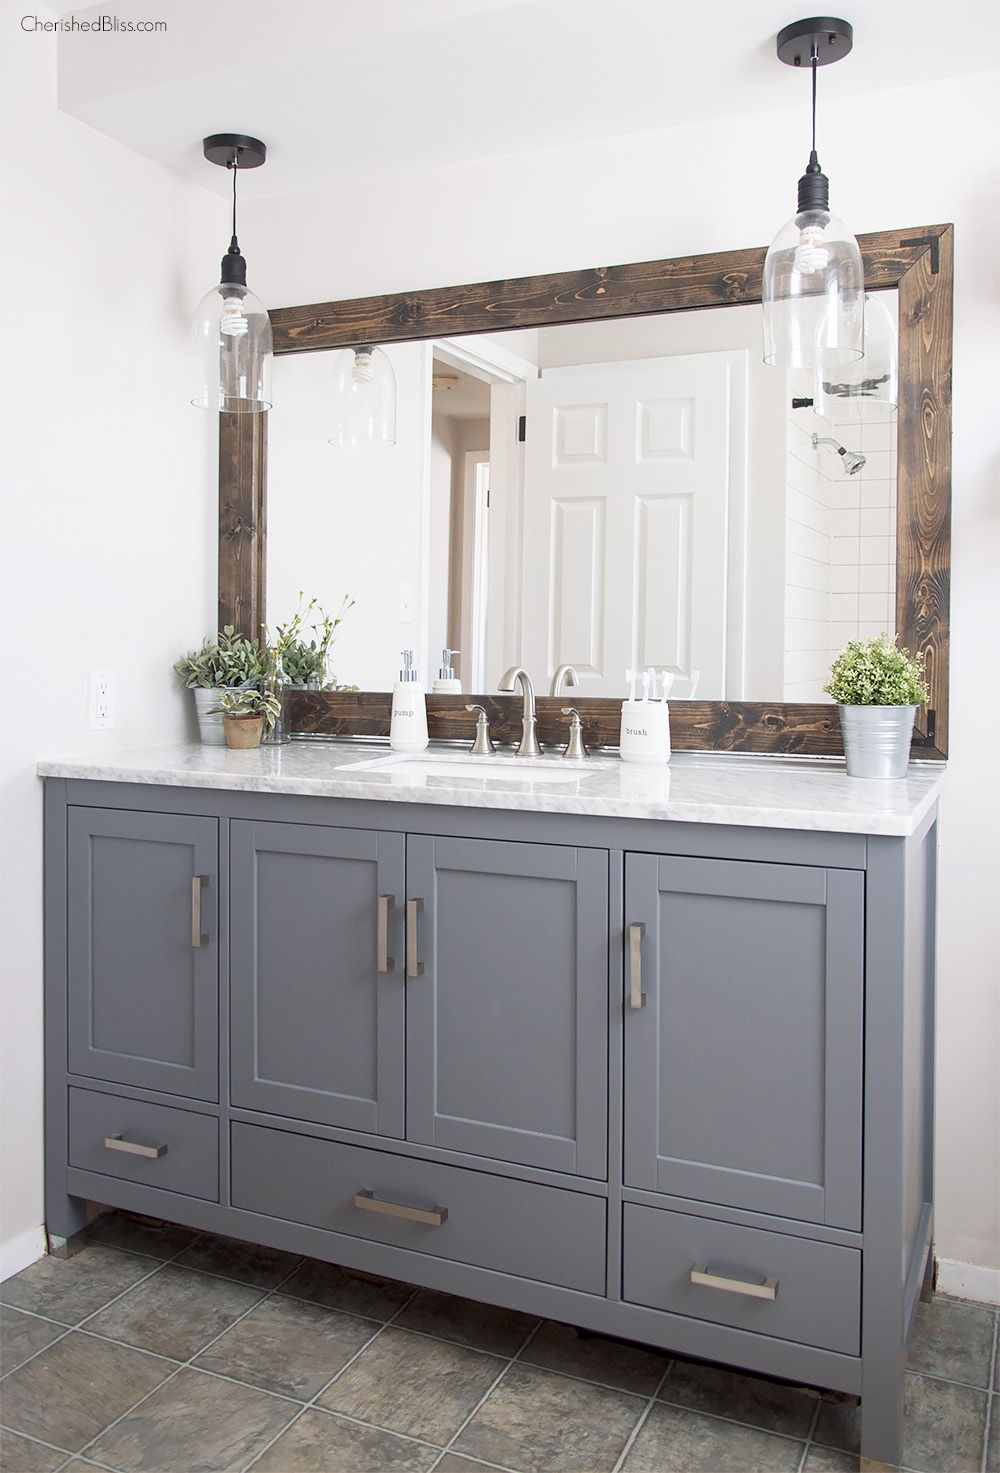 Industrial Farmhouse Bathroom Reveal Industrial Farmhouse - Farmhouse style bathroom vanity for bathroom decor ideas